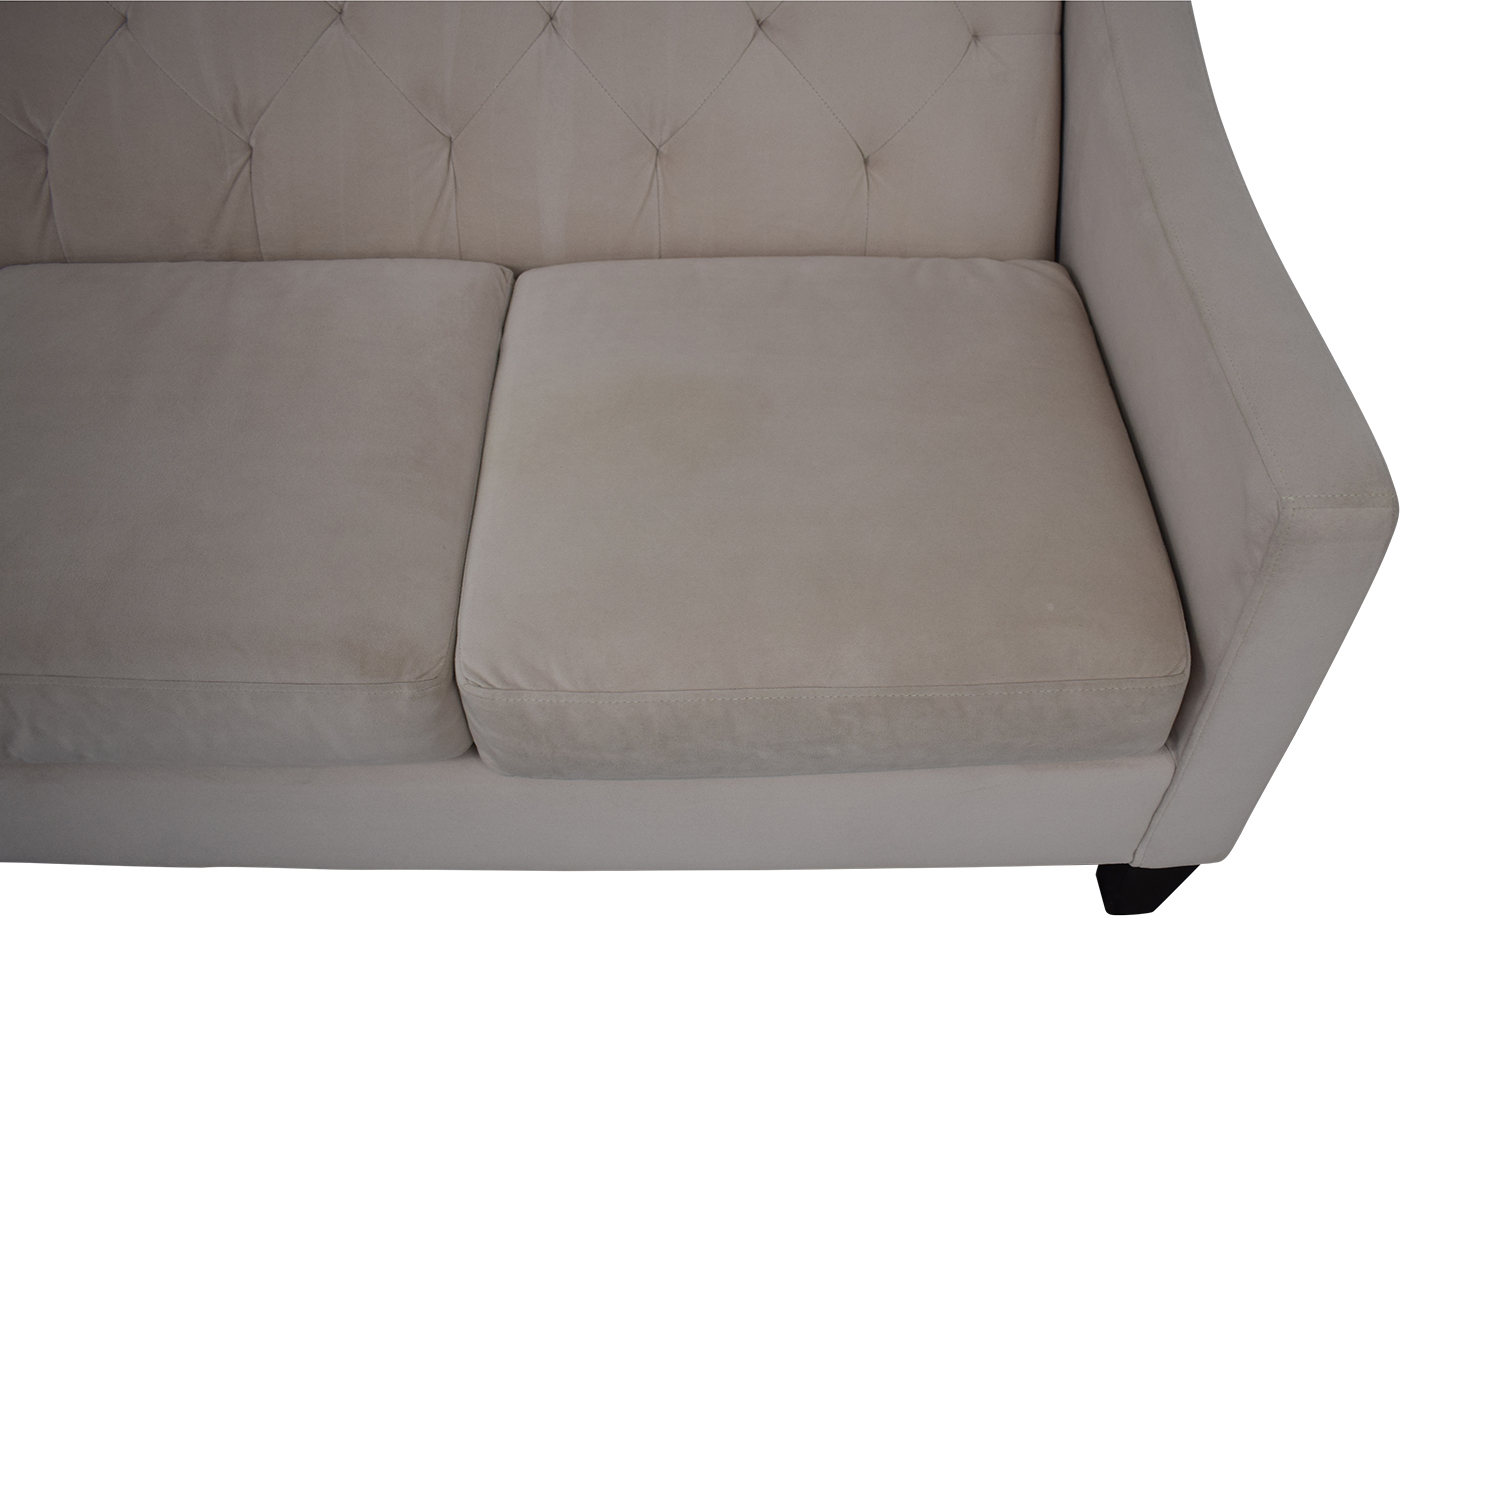 Max Home Max Home Tufted Microfiber Three Cushion Couch on sale